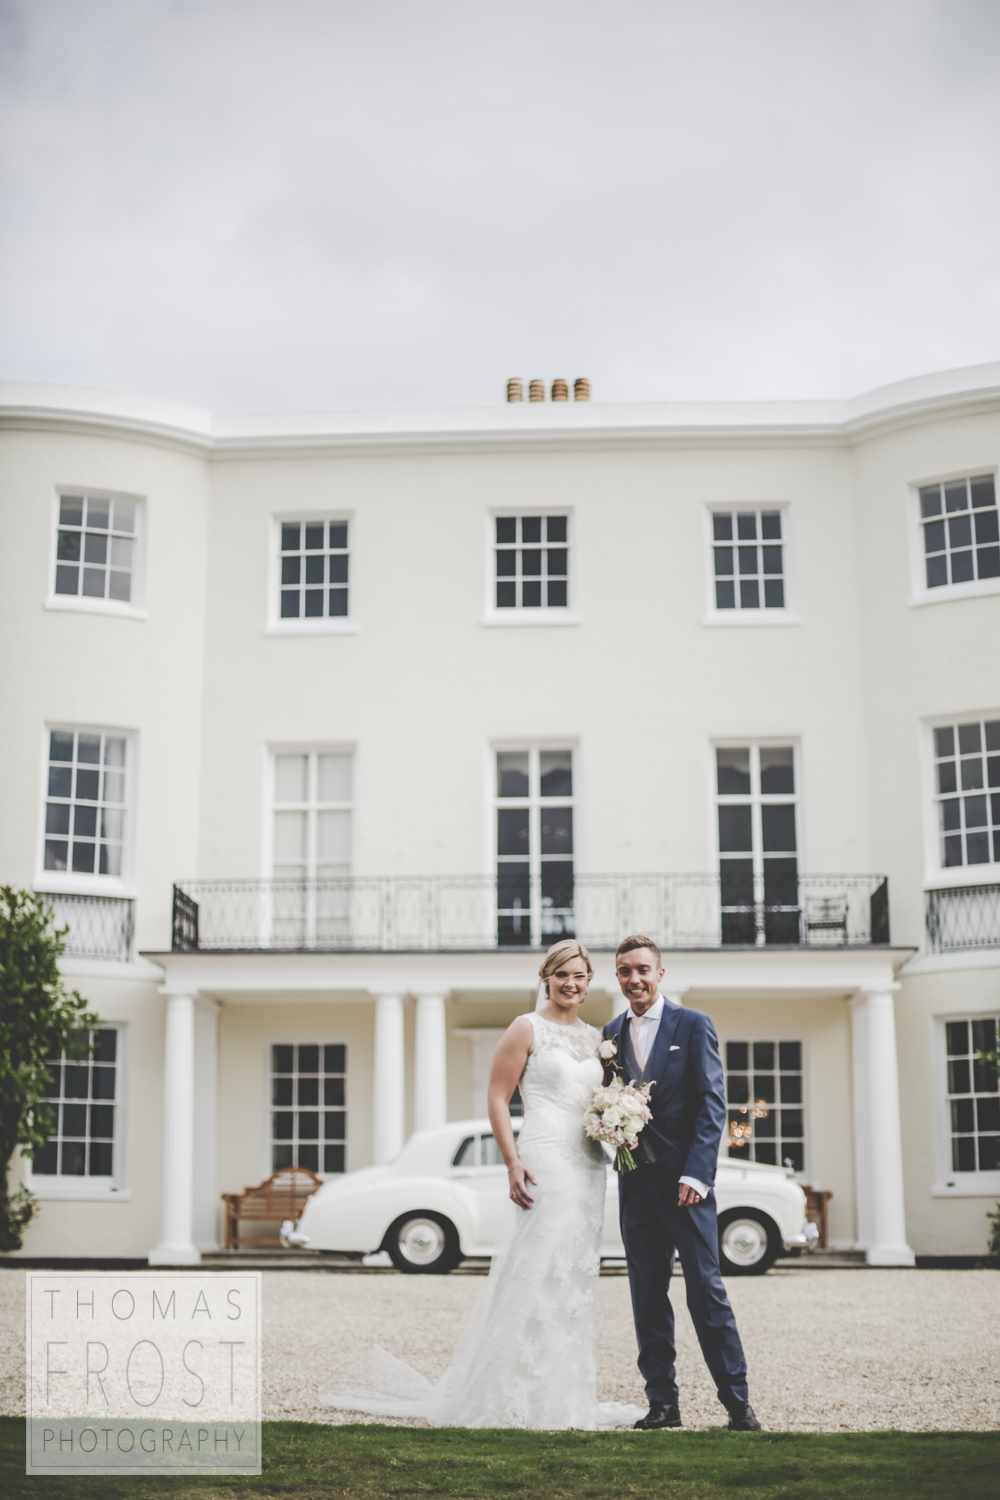 rockbeare-manor-wedding-photography-thomas-frost-devon-wedding-photographer-96